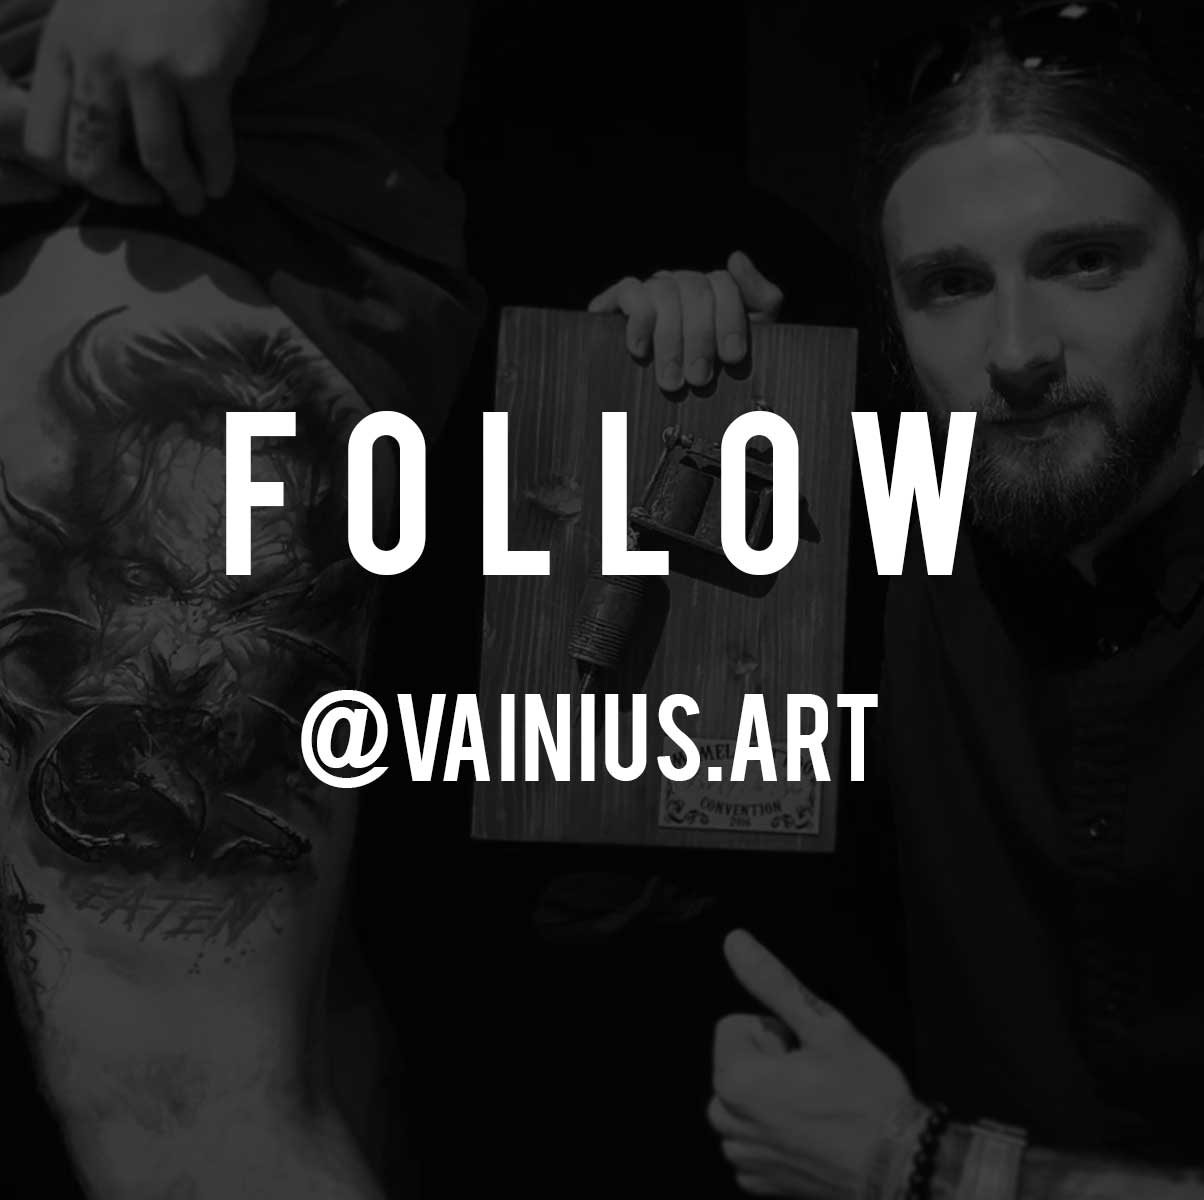 FOLLOW - @VAINIUS.ART